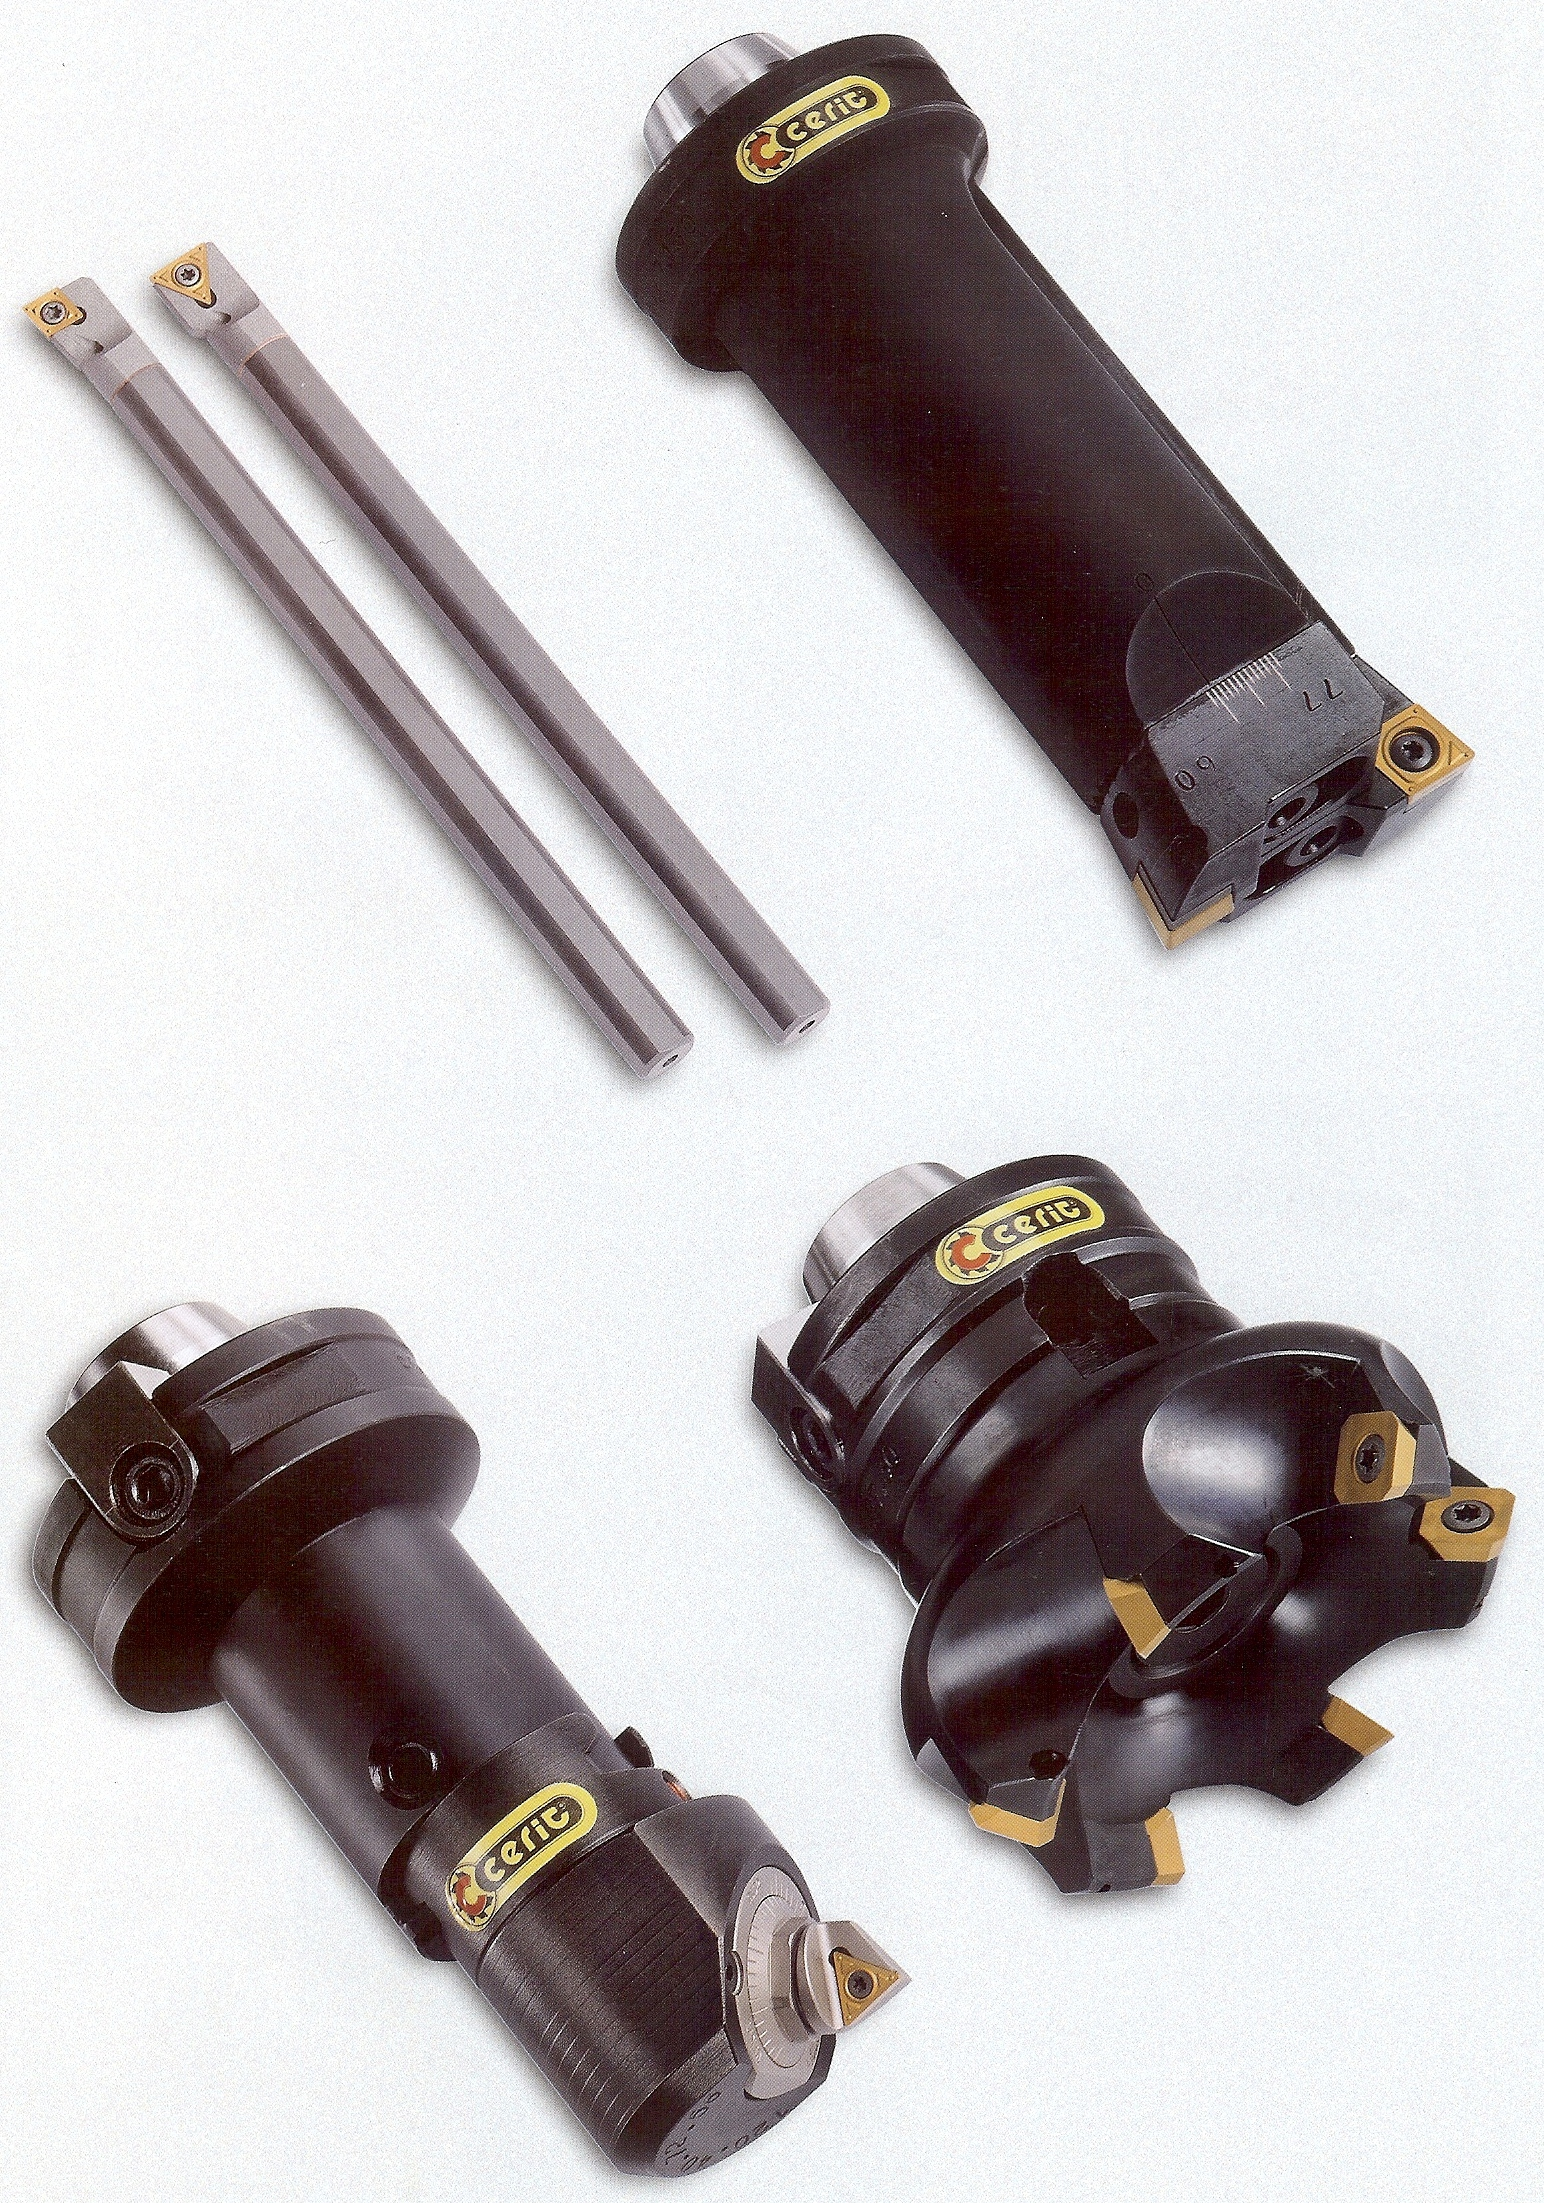 Spindle Tooling - Stocdon carry a huge range of Spindle Tooling systems, from our own label Integra, to Cerit and Modular systems.